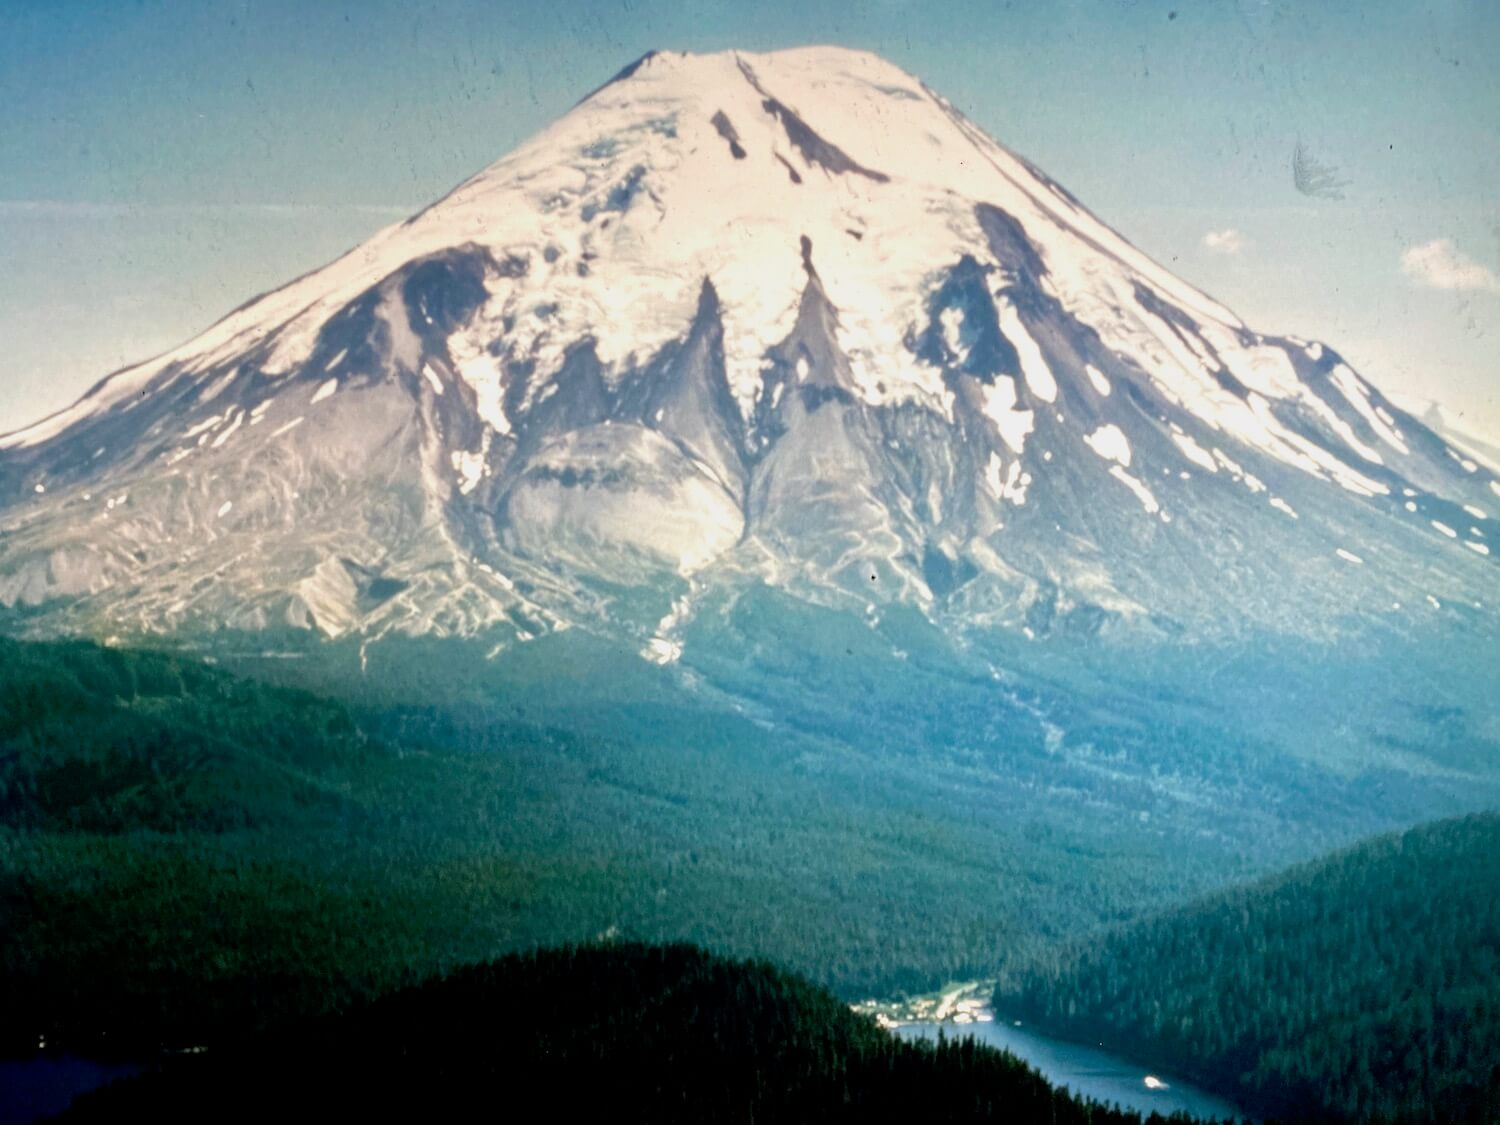 A photo from exhibit in the Mt. St. Helens Visitor Center showing the lovely snow capped mountain peak before the devastating eruption that would remove the top third of the peak.  This shot shows snow and glaciers on the top of the mountain transitioning to gray rocky areas that lead to a thick carpet of green fir trees flowing towards Spirit Lake.